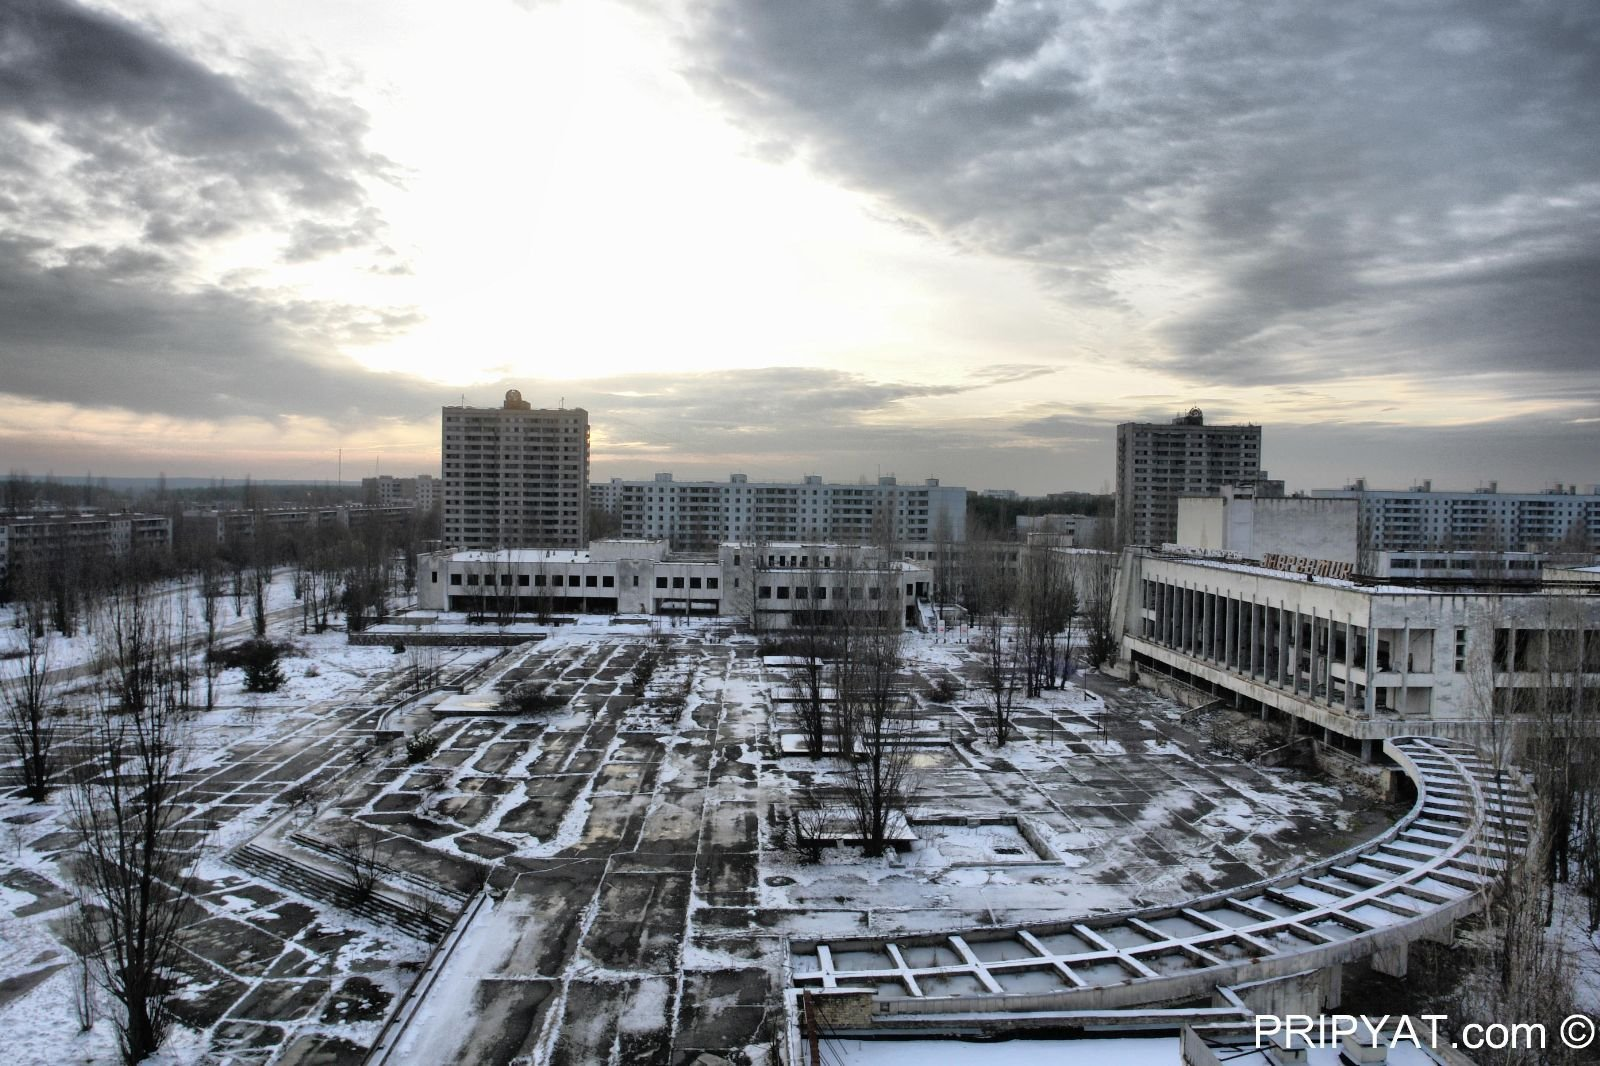 Chernobyl, the city of Pripyat